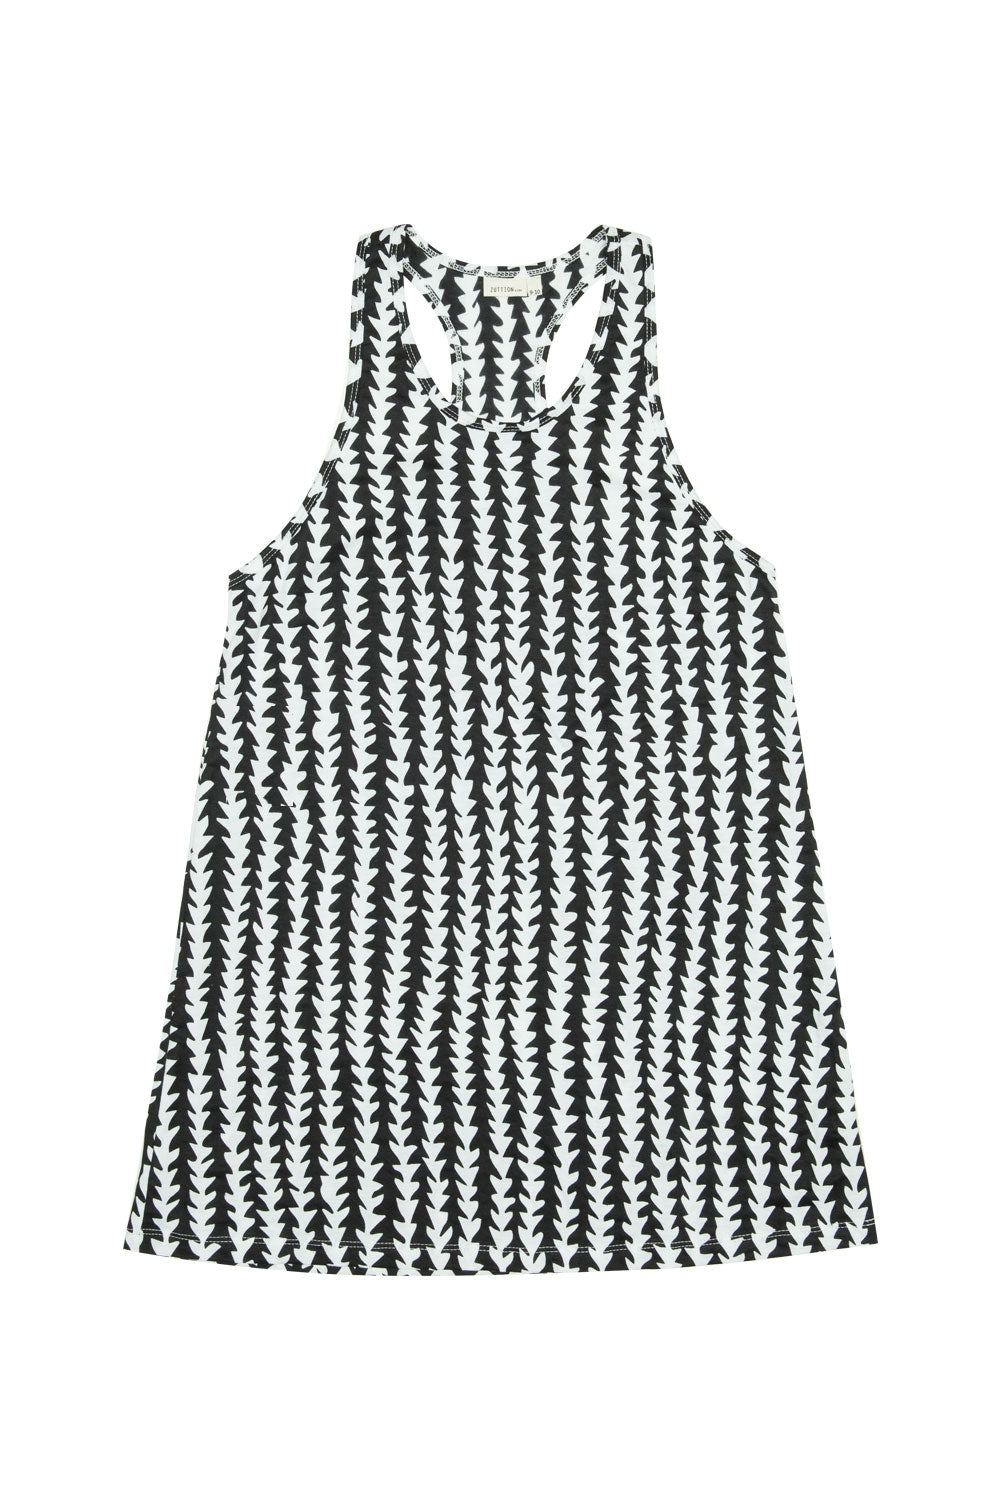 TRIBE SINGLET DRESS BLACK/ WHITE